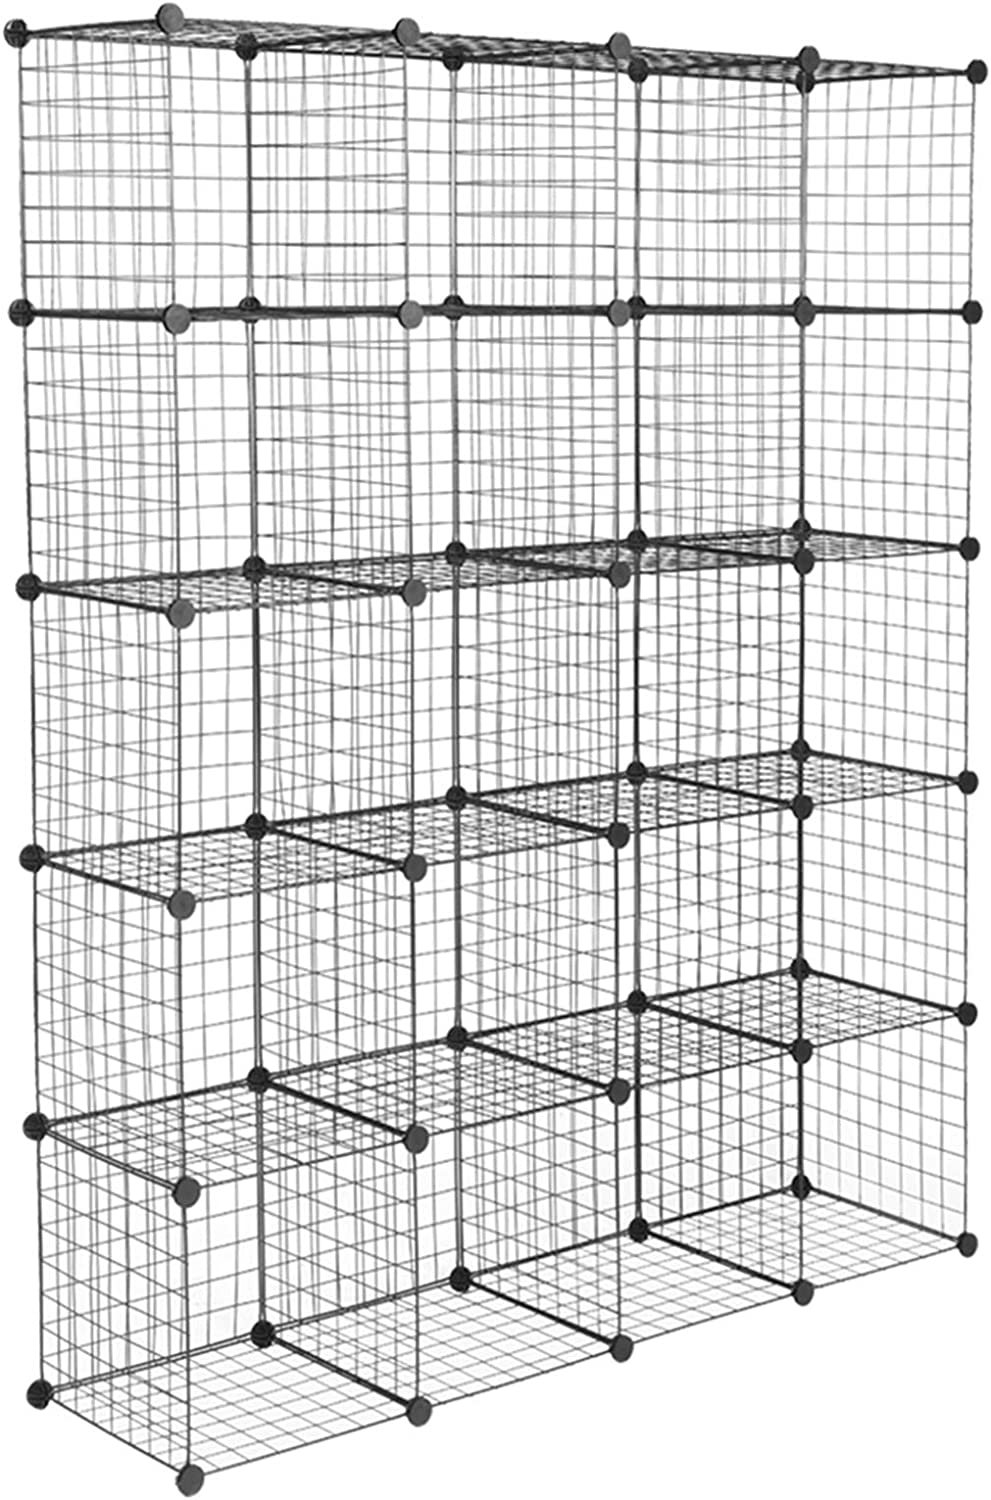 20-Cube Organizer Max 90% OFF Cube Shelves Ranking integrated 1st place Wire Storage